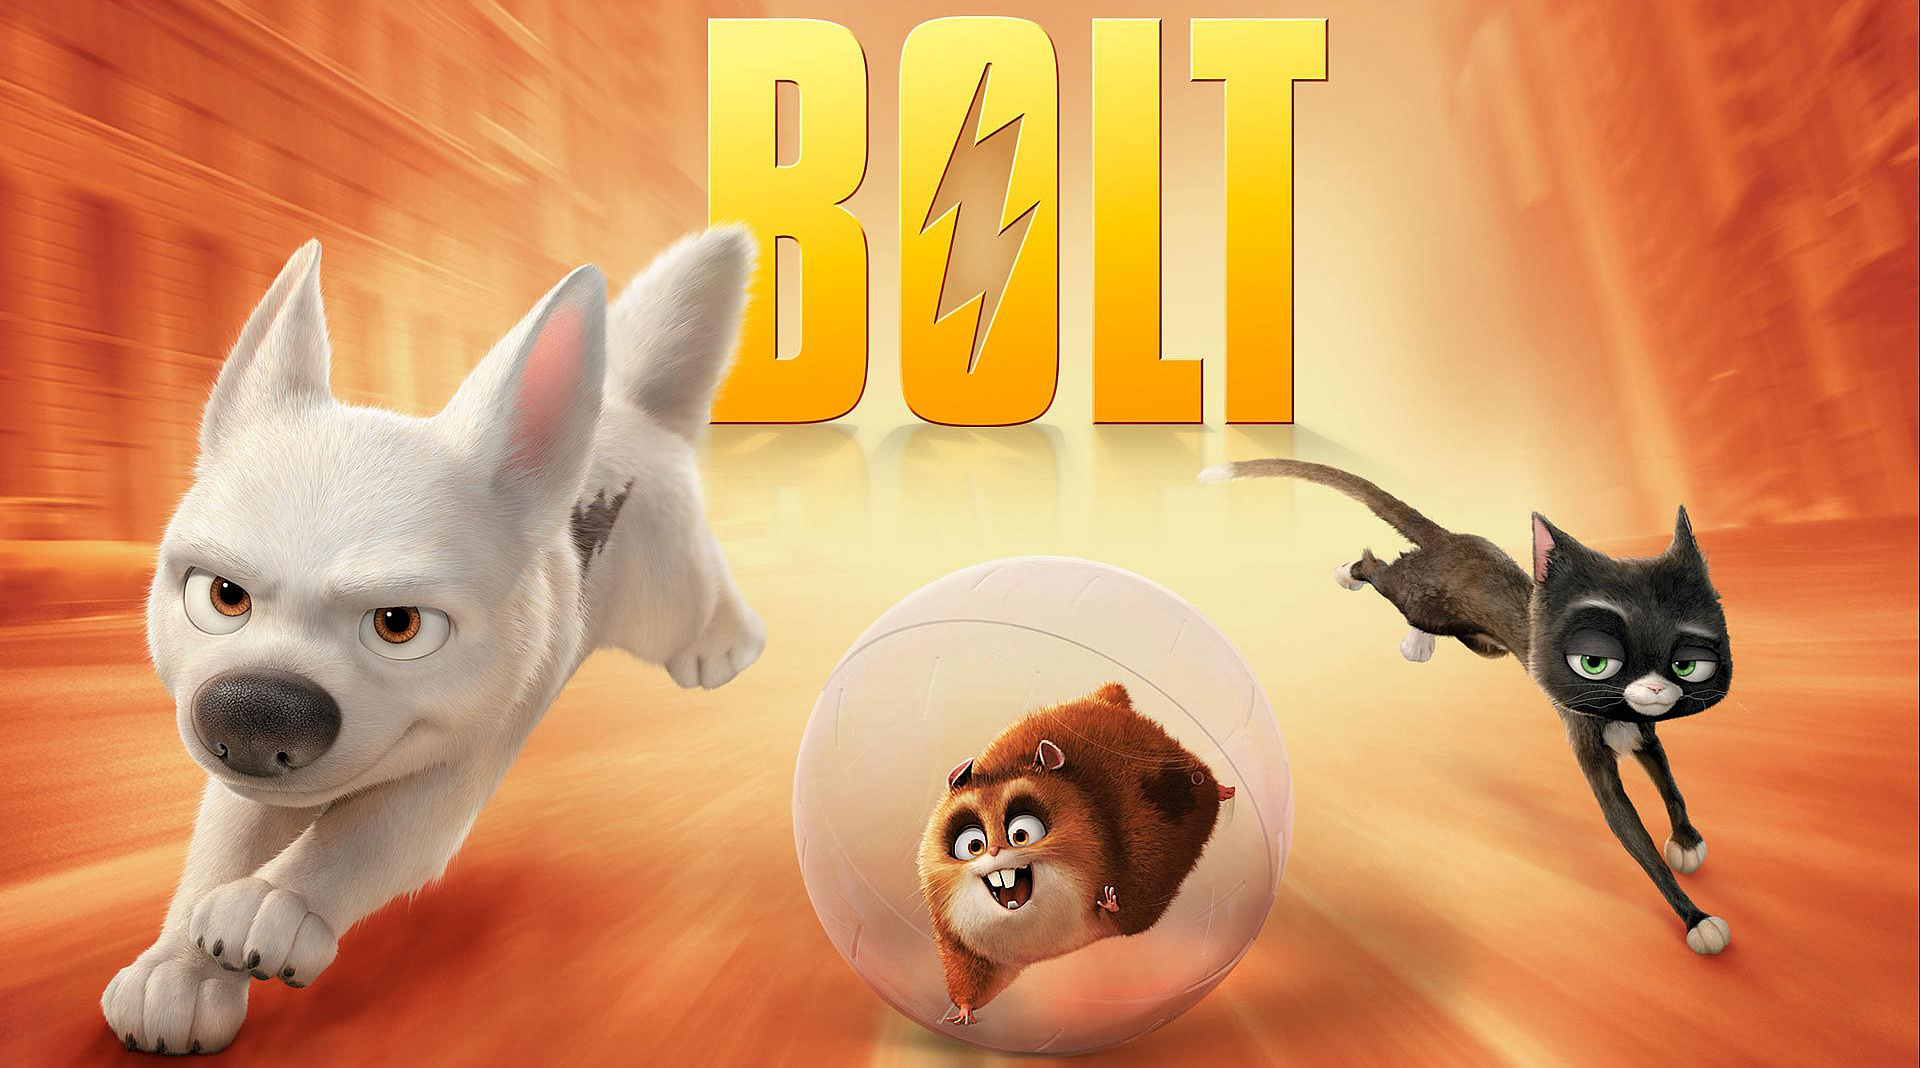 Walt Disney Animation Studios— Bolt